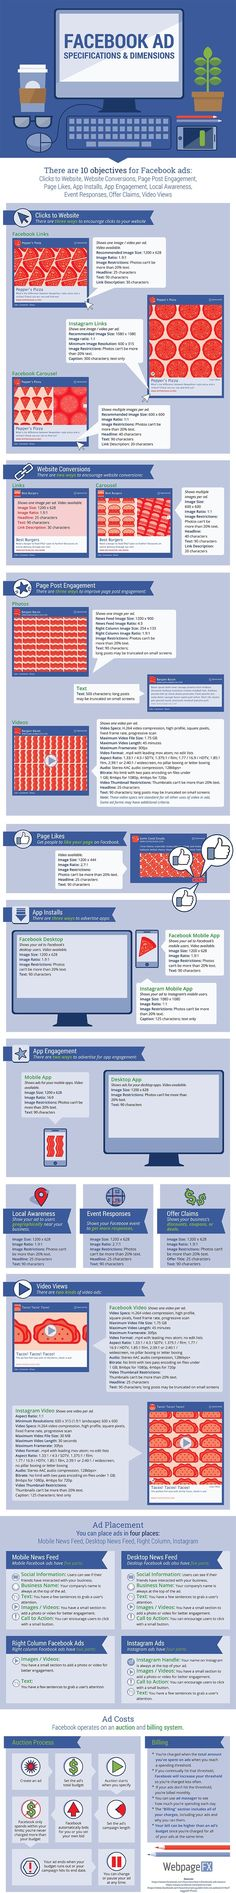 Facebook Ad Specifications